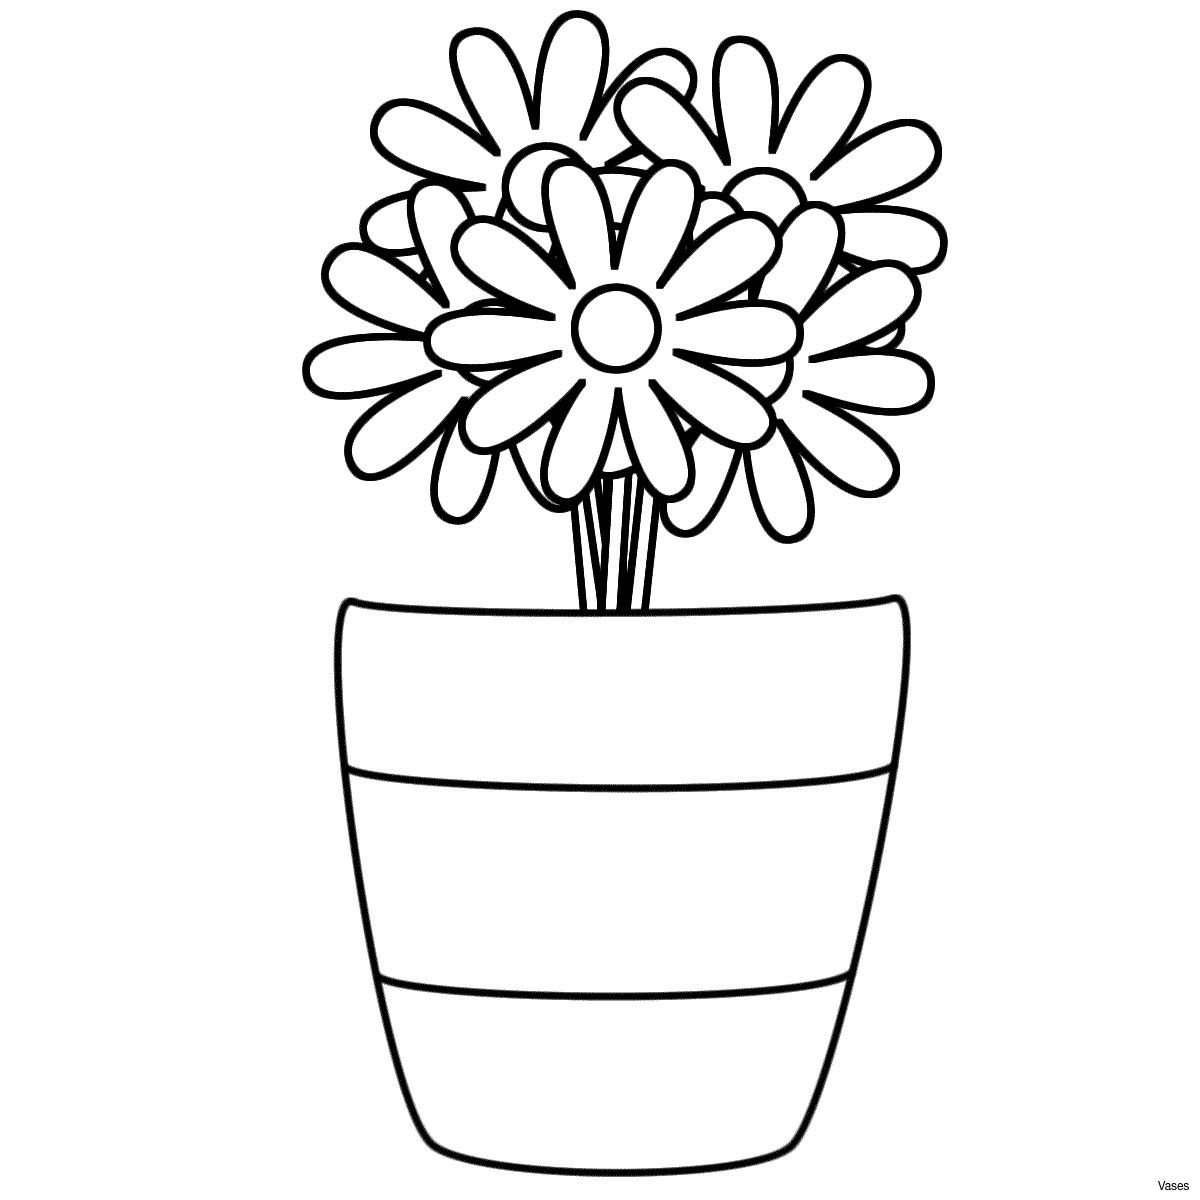 Long Flower Vase for Living Room Of Coloring Book Sheets Best Of Cool Vases Flower Vase Coloring Page Intended for Coloring Book Sheets Best Of Cool Vases Flower Vase Coloring Page Pages Flowers In A top